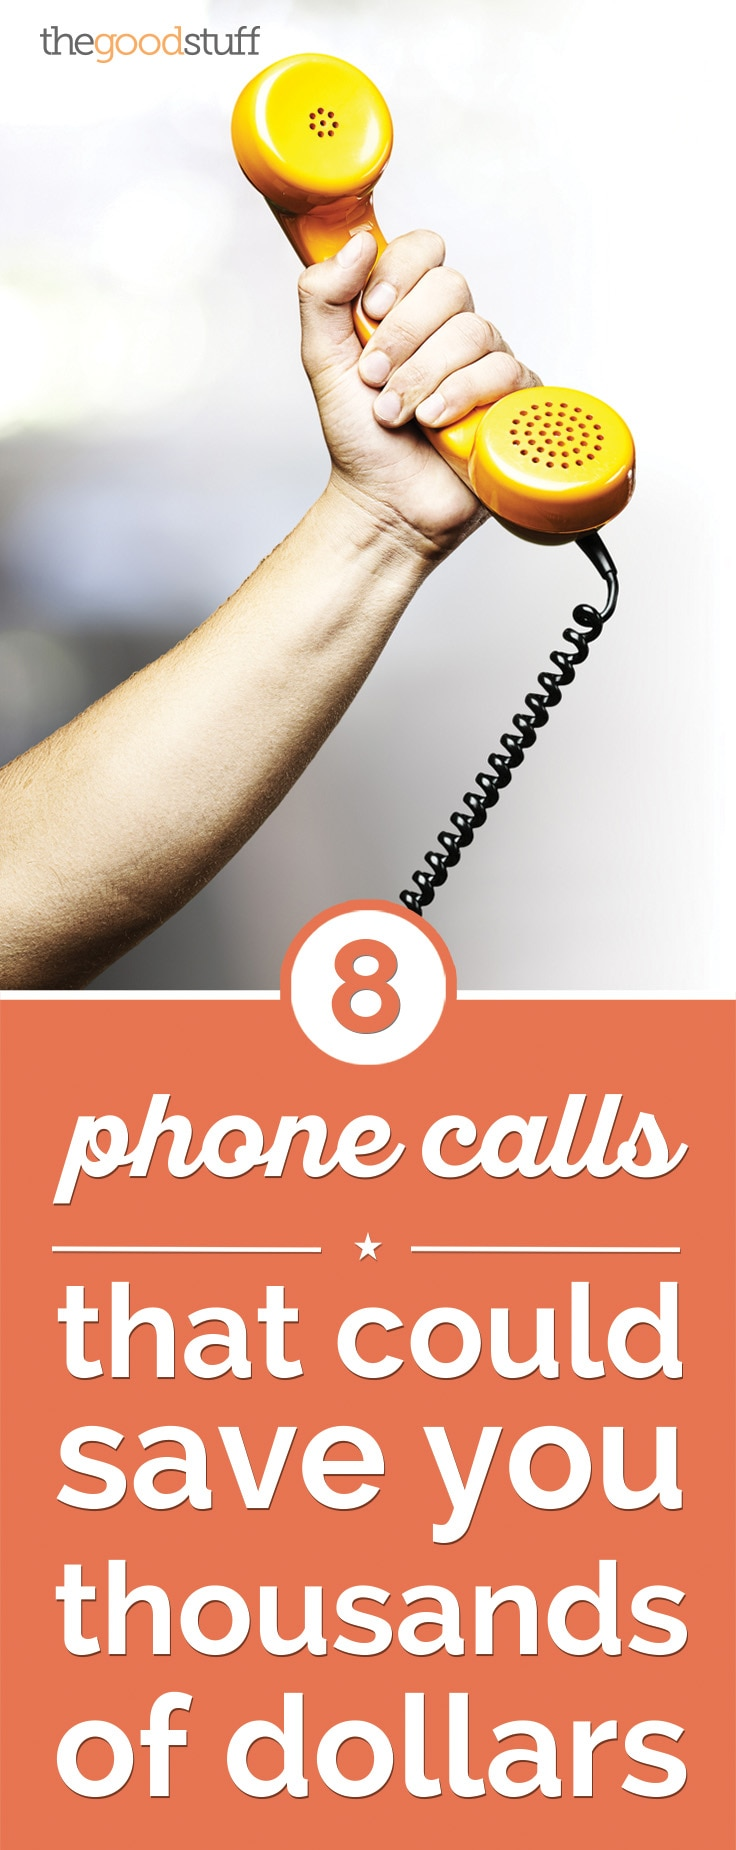 8 Money Saving Phone Calls That Could Save You Thousands | thegoodstuff